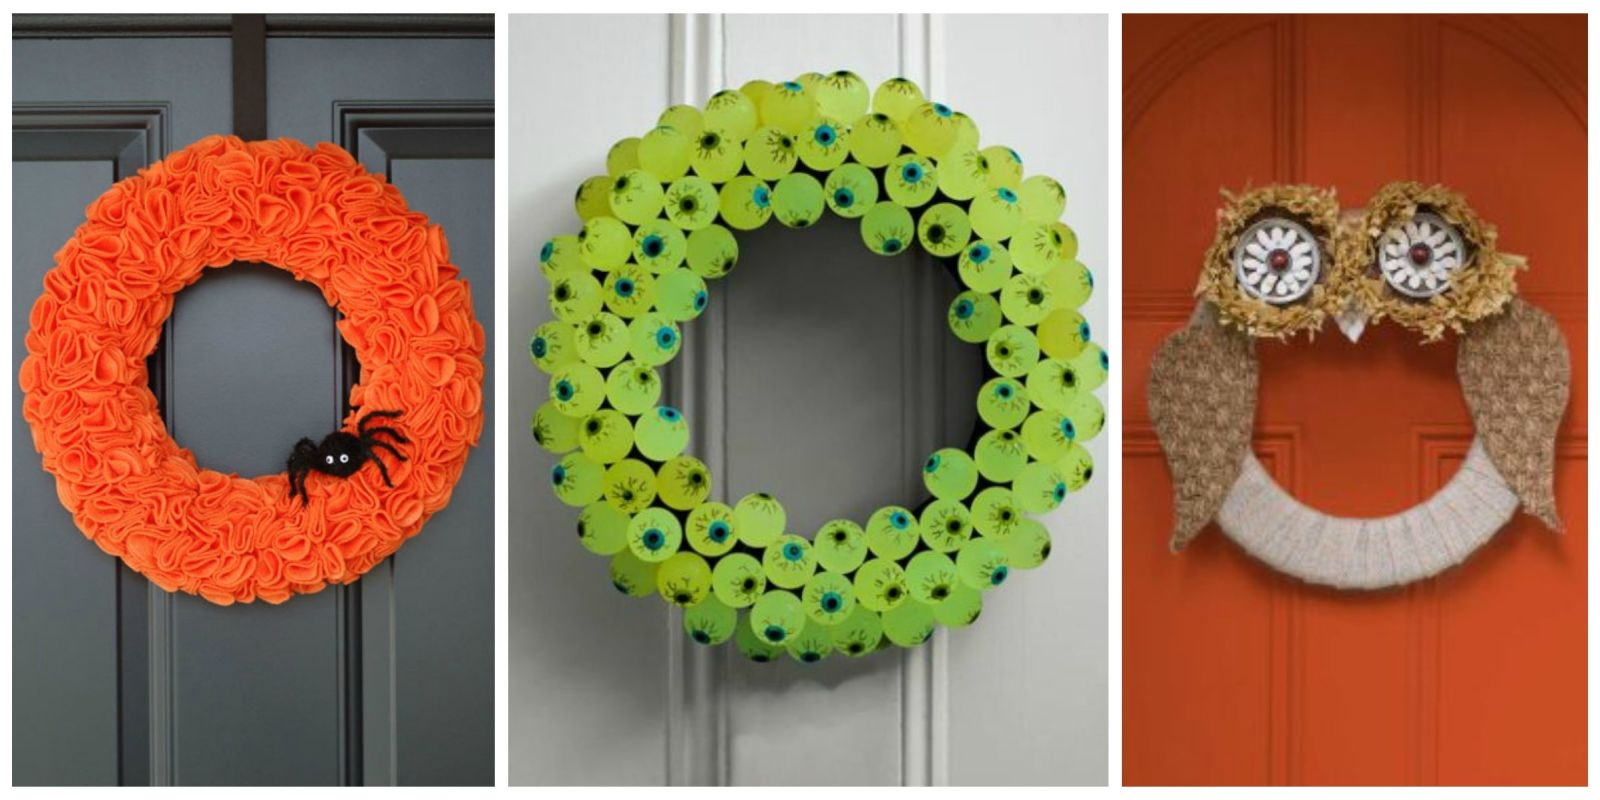 30 diy halloween wreaths how to make halloween door decorations ideas - Homemade Ideas For Halloween